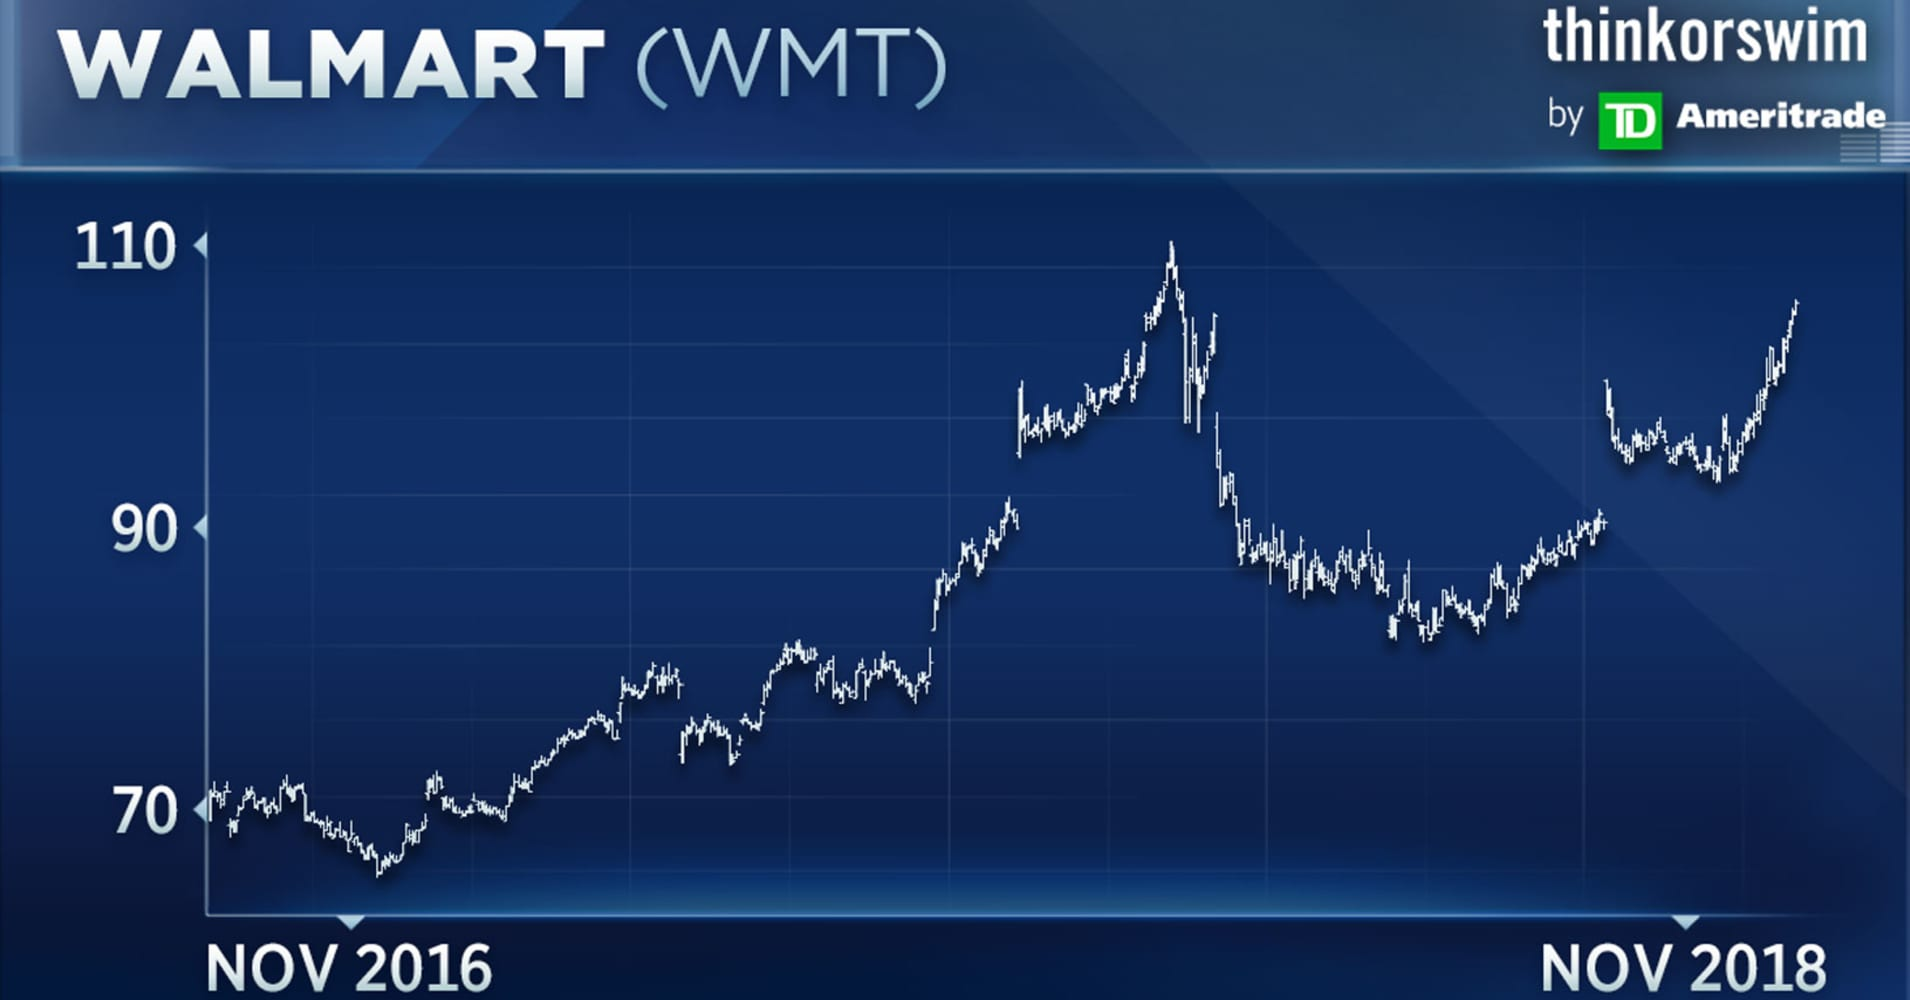 Top technician says Dow stock Walmart could break out to new highs on earnings this week